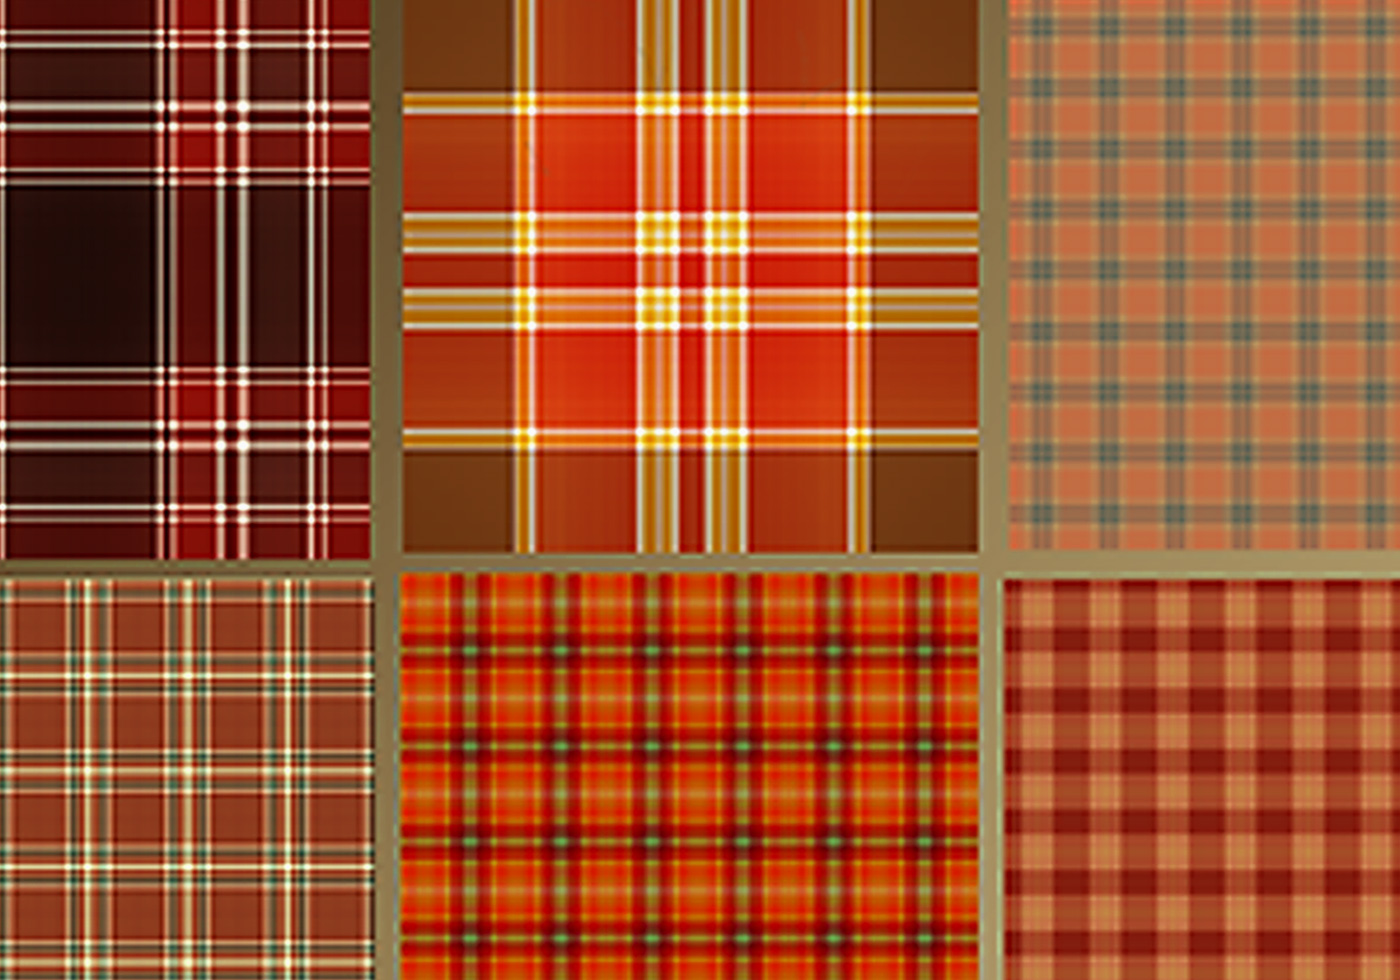 plaid patterns free photoshop brushes at brusheezy. Black Bedroom Furniture Sets. Home Design Ideas